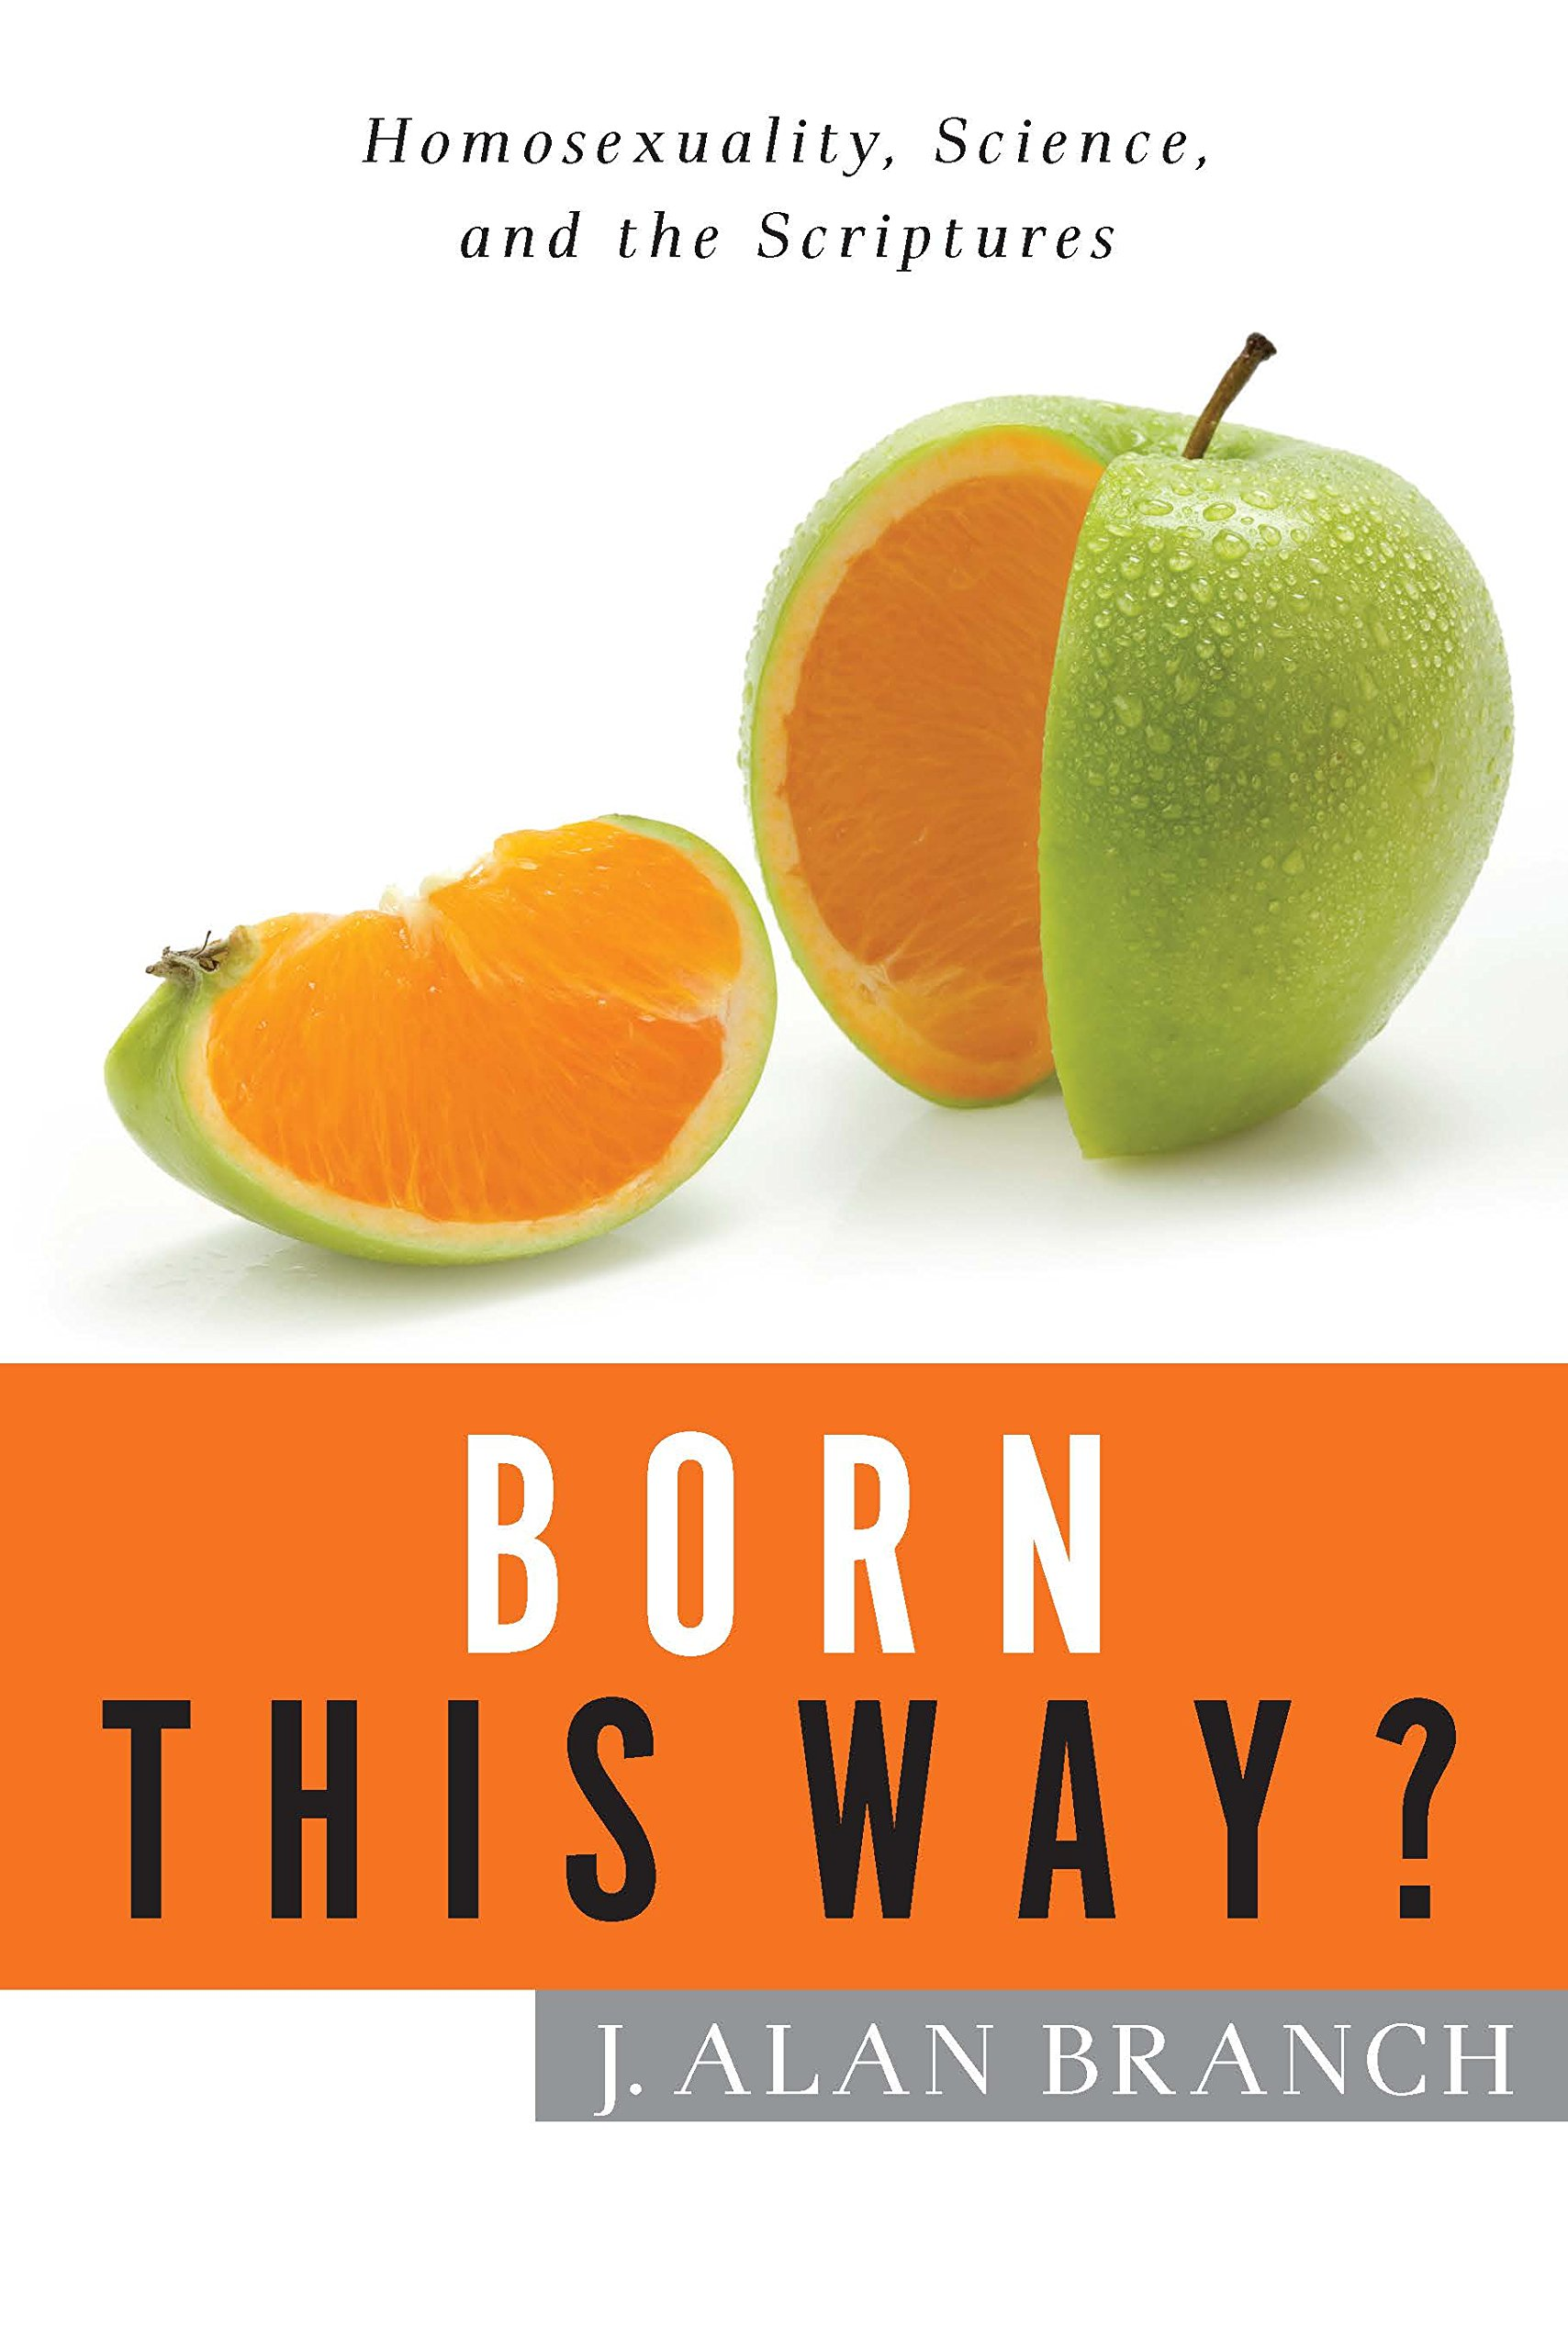 """Born This Way? - What are Christians to make of relentless assertions that homosexuality is an innate characteristic? Some pastors and church members are suggesting that scientific research demands a change to the historic stance of Christian sexual ethics.Alan Branch is the author of Born This Way? He wants Christians not to be intimidated and confused by these assertions. Branch succeeds by carefully walking the reader through the research (but not painstakingly so) to show that homosexuality is not an innate quality, and how some findings are twisted to arrive at pre-conceived notions. He concludes that, """"while there are some genetic or biological factors that correlate with a higher incidence of same-sex attraction and homosexual behavior, as of yet there is no proof of genetic or biological causation for homosexuality."""" This distinction is vital, and it comes as good news to those who want to be faithful to both science and the Bible."""